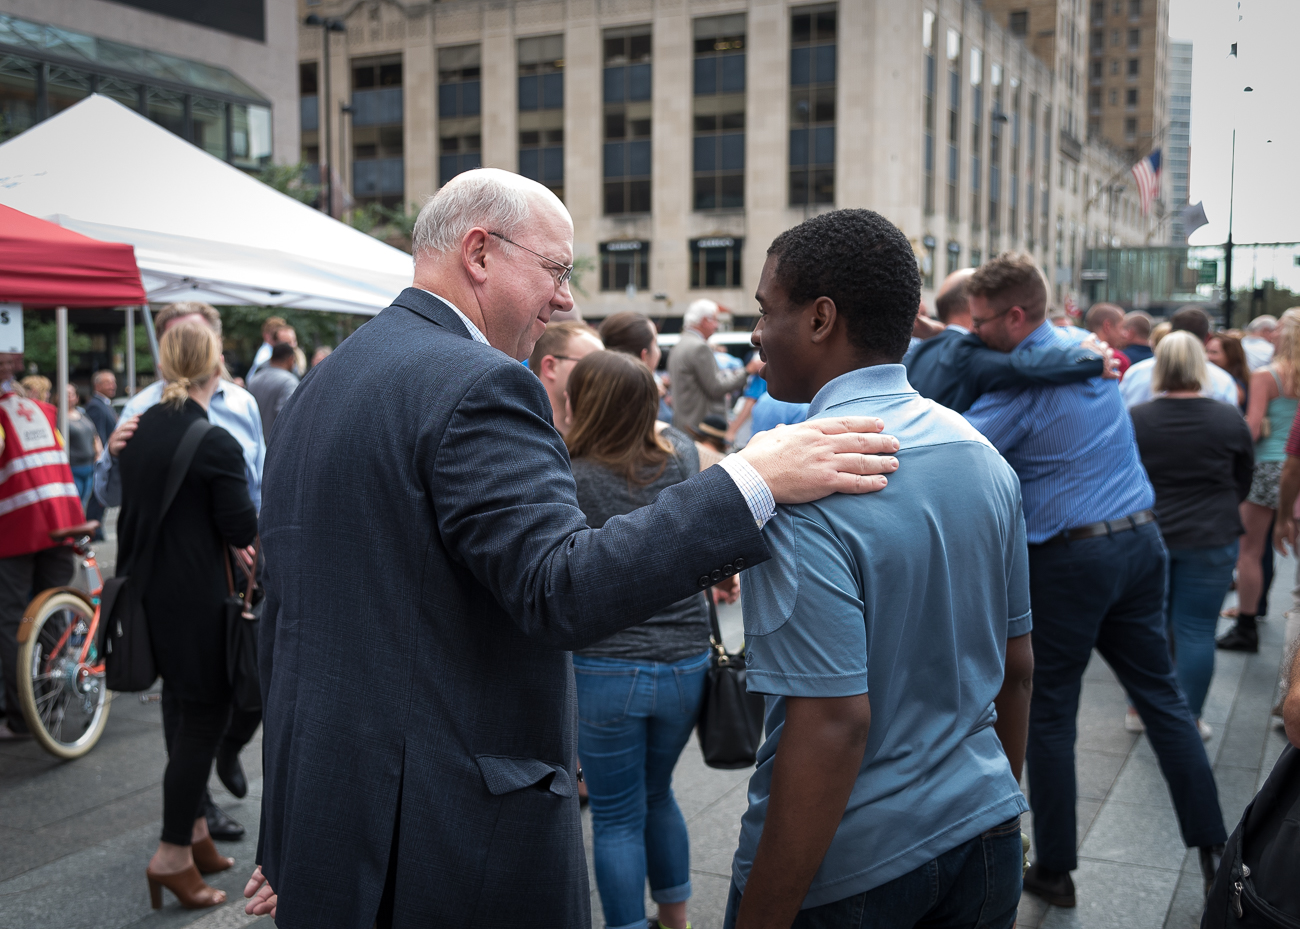 Thousands of Cincinnatians assembled on Fountain Square on the afternoon of Friday, September 7 for a vigil that honored the victims of the violence that occurred at Fifth Third Tower a day earlier. Fifth Third CEO Greg Carmichael, United Way President Michael Johnson, Mayor John Cranley, and religious leaders Ennis Tait and Brian Tome spoke to the masses for a total of around 30 minutes. The event featured moments of silence followed by neighborly affection intended to begin the healing process of the community. After the speeches, attendees lingered on the Square to mingle with the people of Cincinnati. / Image: Phil Armstrong, Cincinnati Refined // Published: 9.8.18